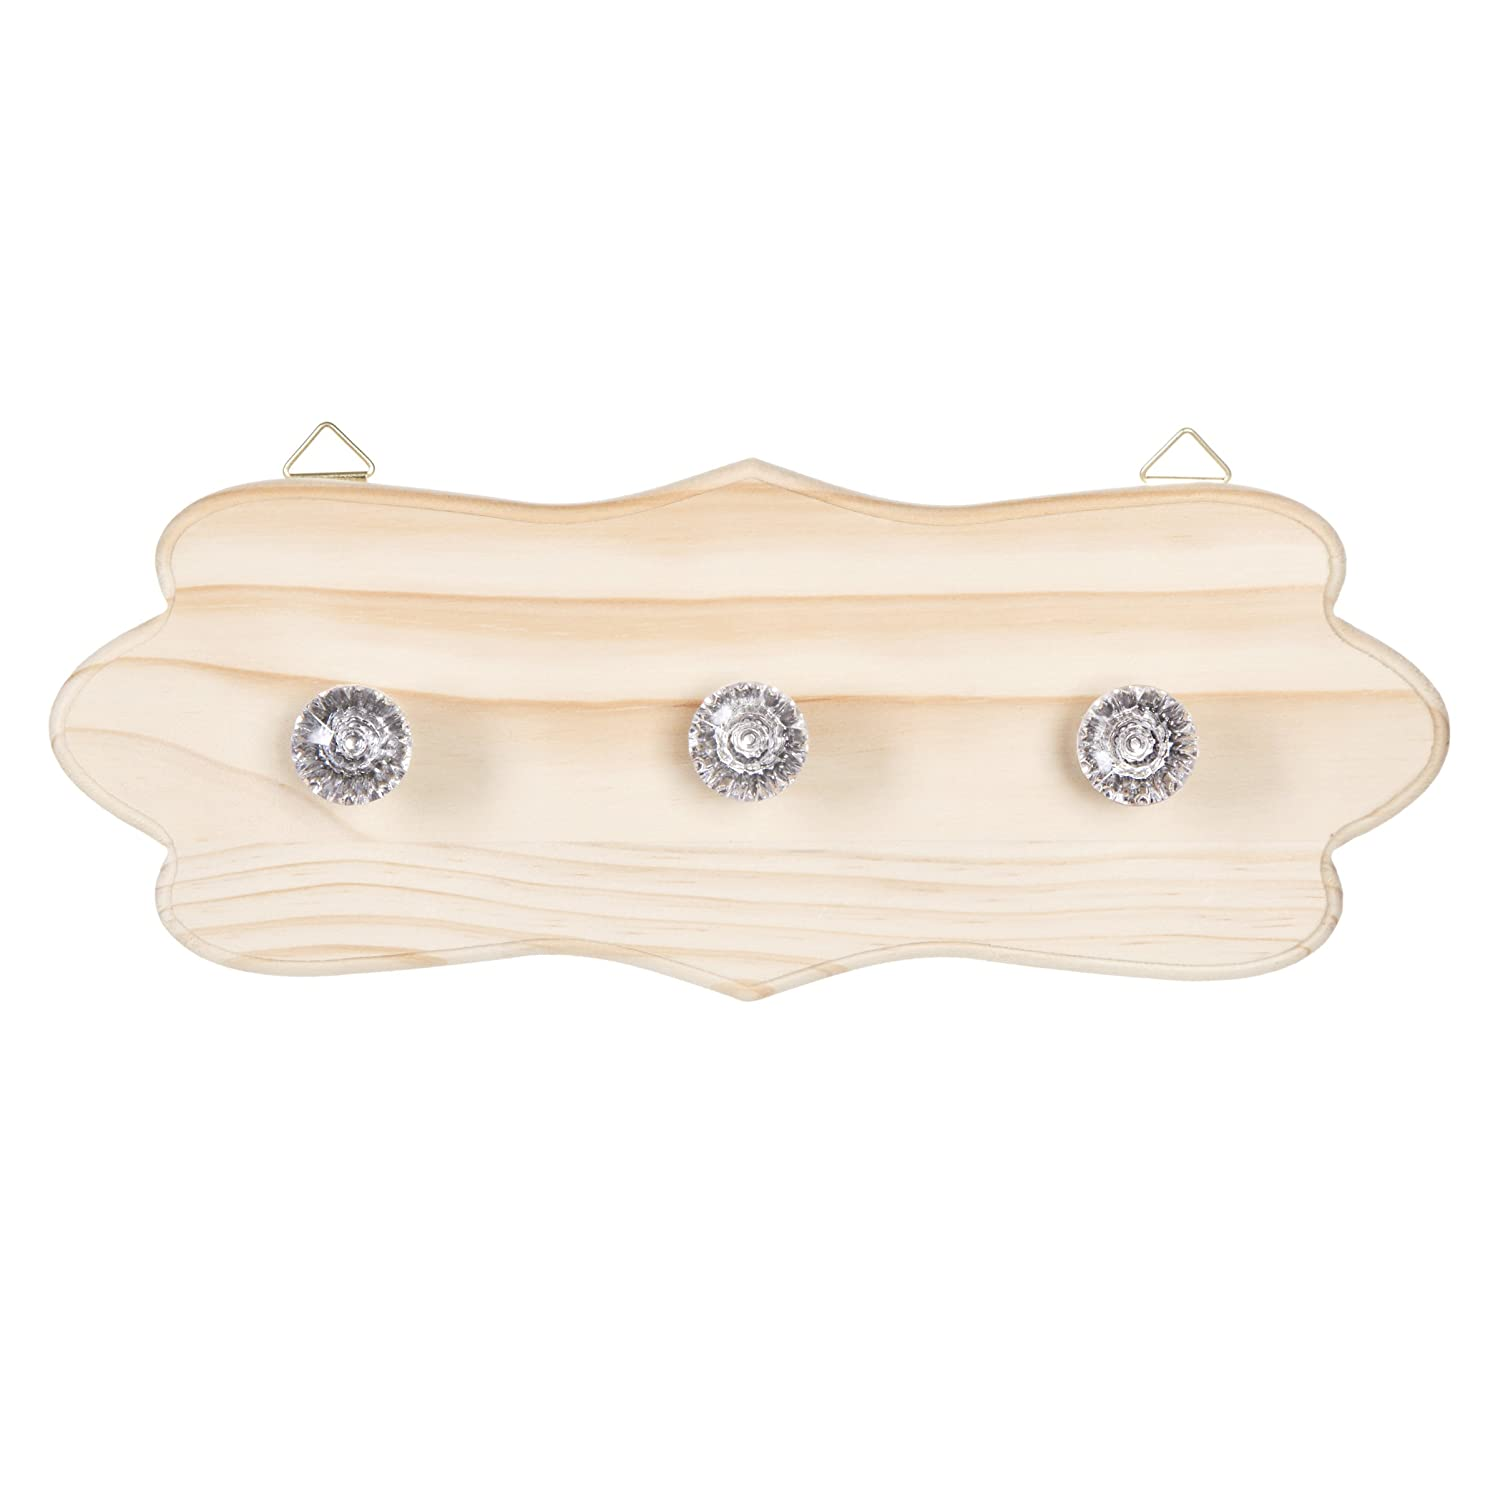 Darice Fancy Wood Plaque with Three Knobs